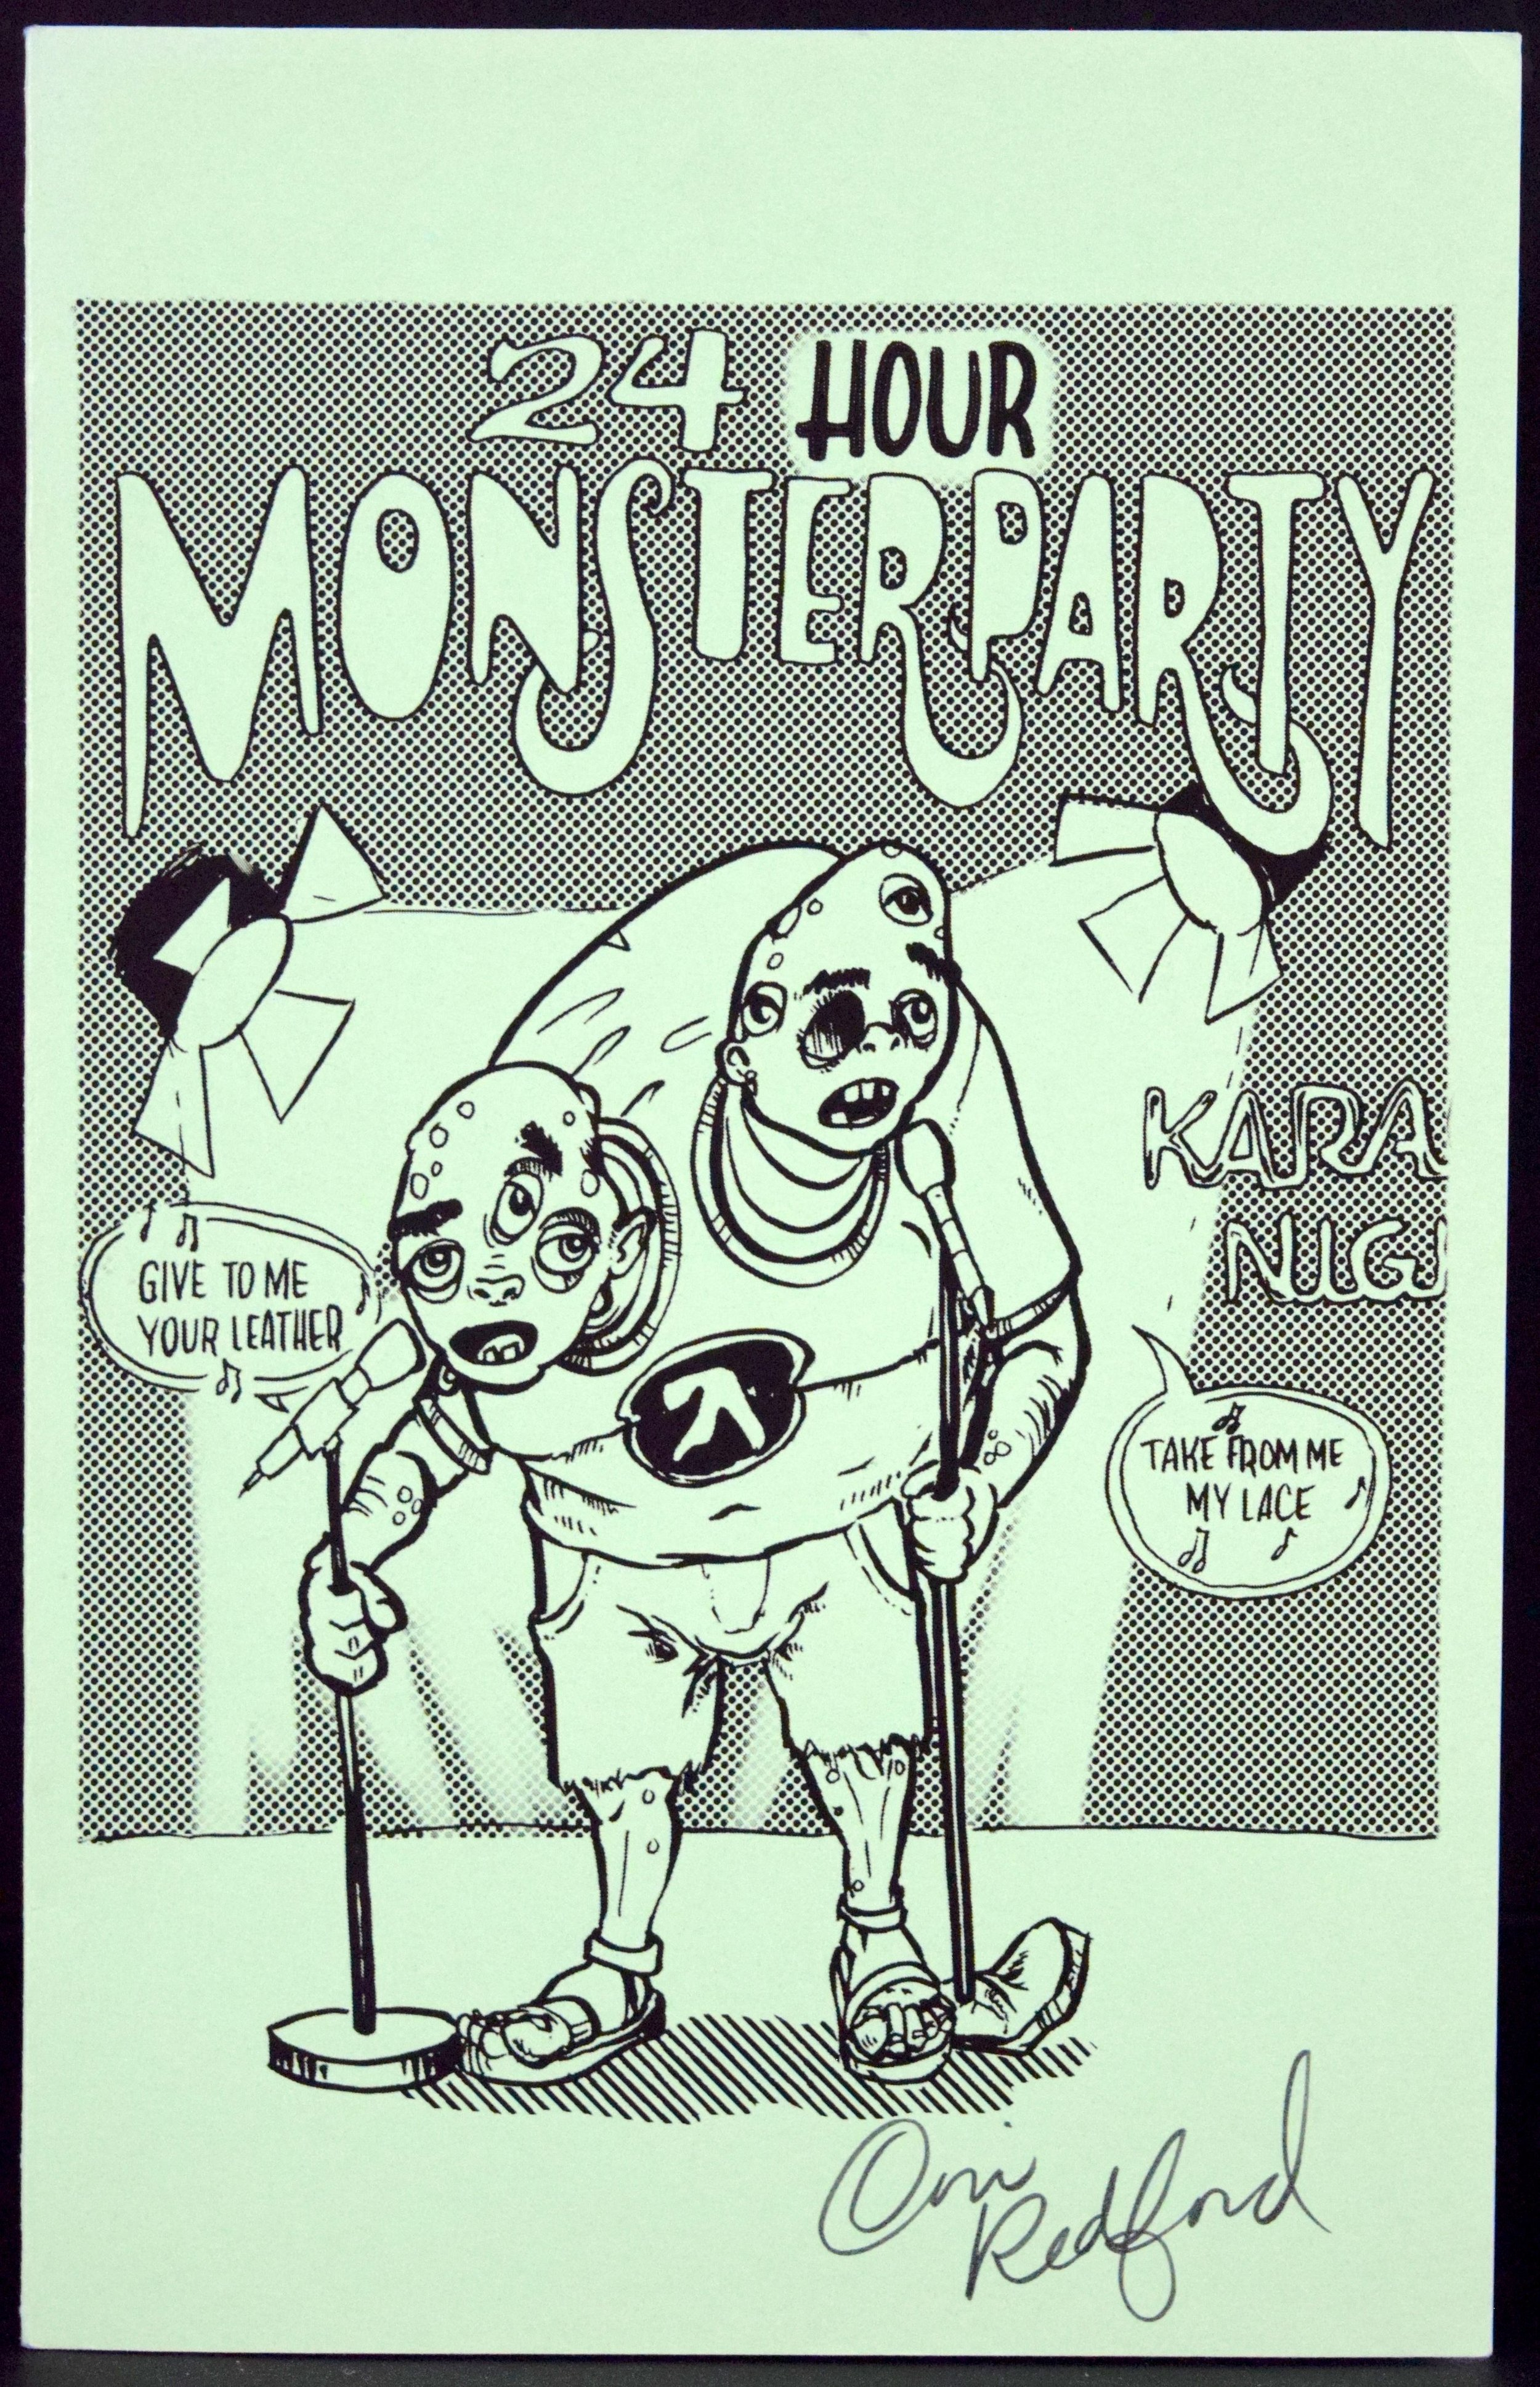 24 Hour Monster Party  by  Cori Redford .